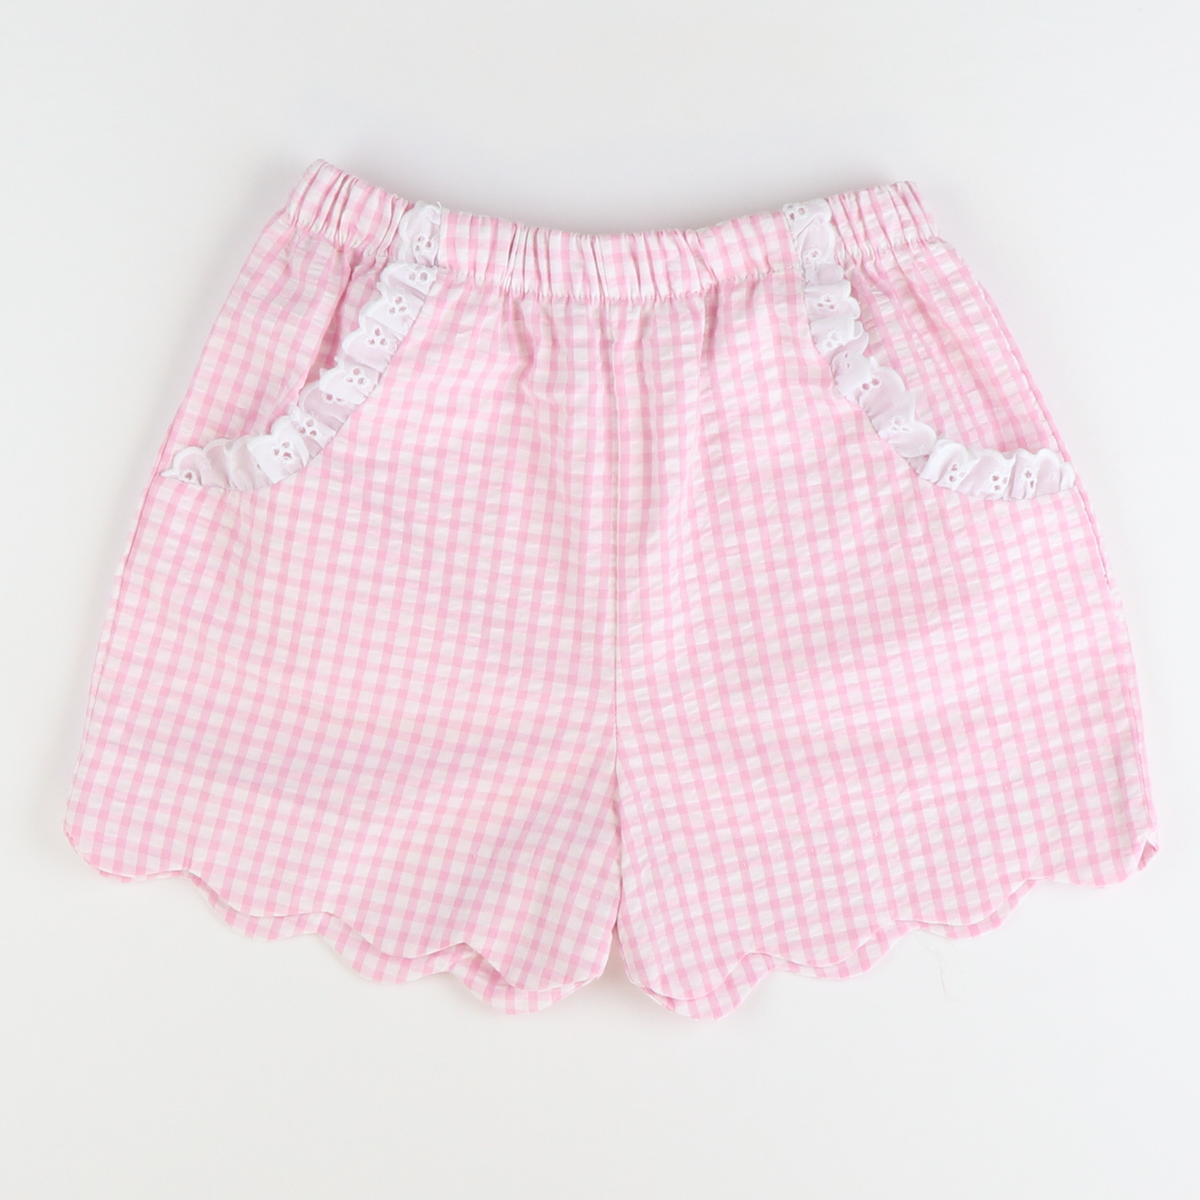 Soda Shop Scalloped Shorts - Pink Check Seersucker